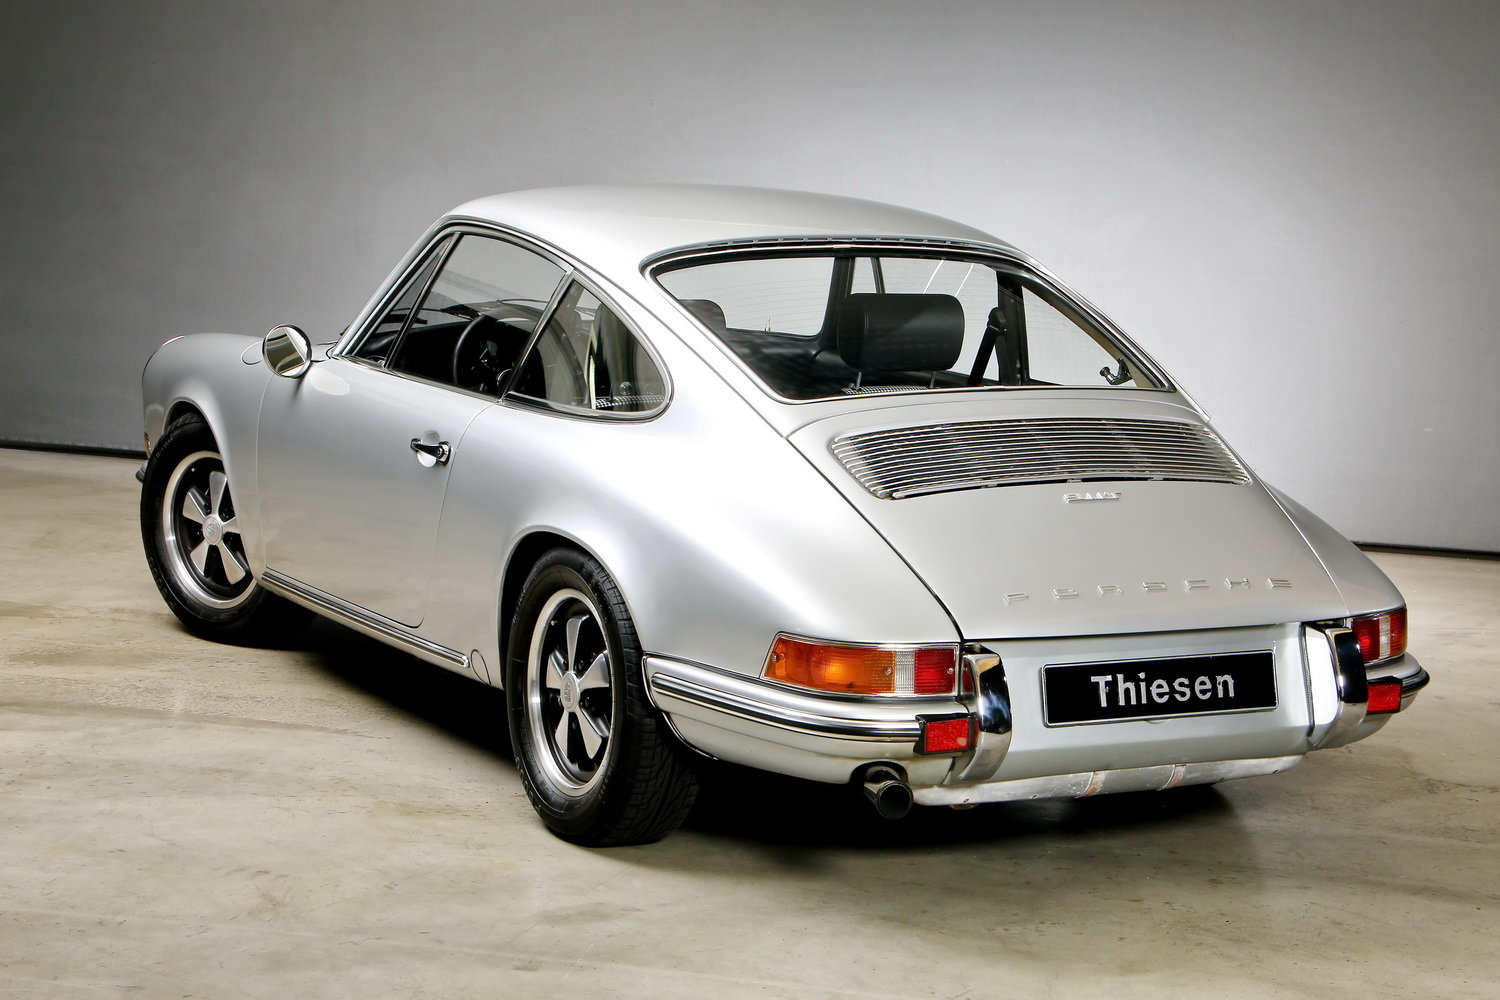 1970 911T 2.2 Ltr. Coup - Individualumbau - For Sale (picture 11 of 12)